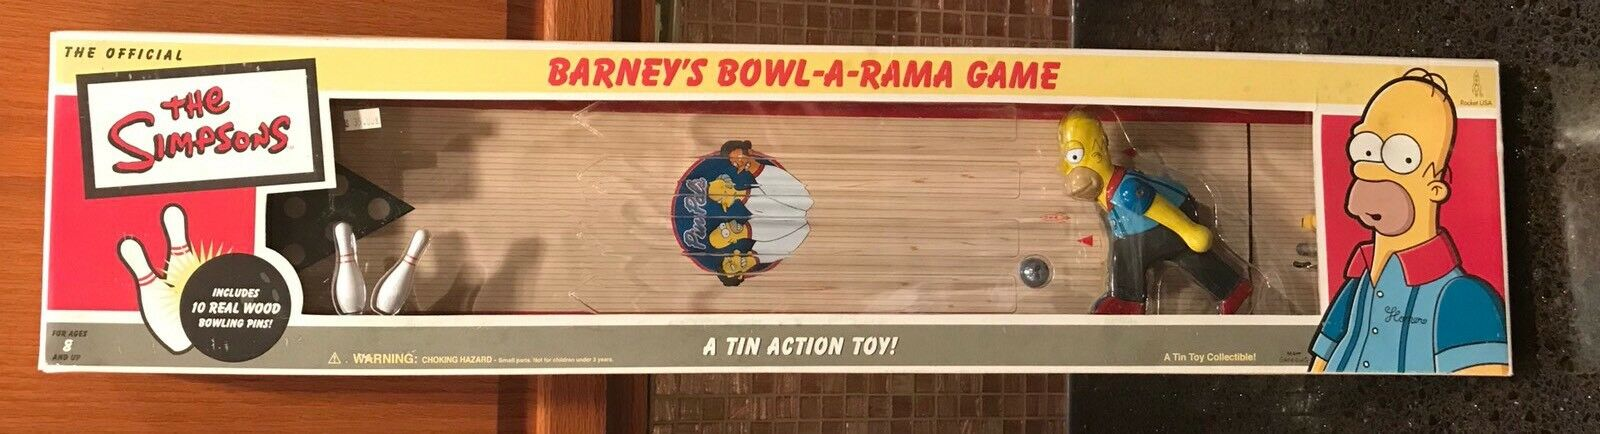 THE SIMPSONS BARNEYS BOWL - A -RAMA - A TIN ACTION COLECTIBLE BOWLING GAME